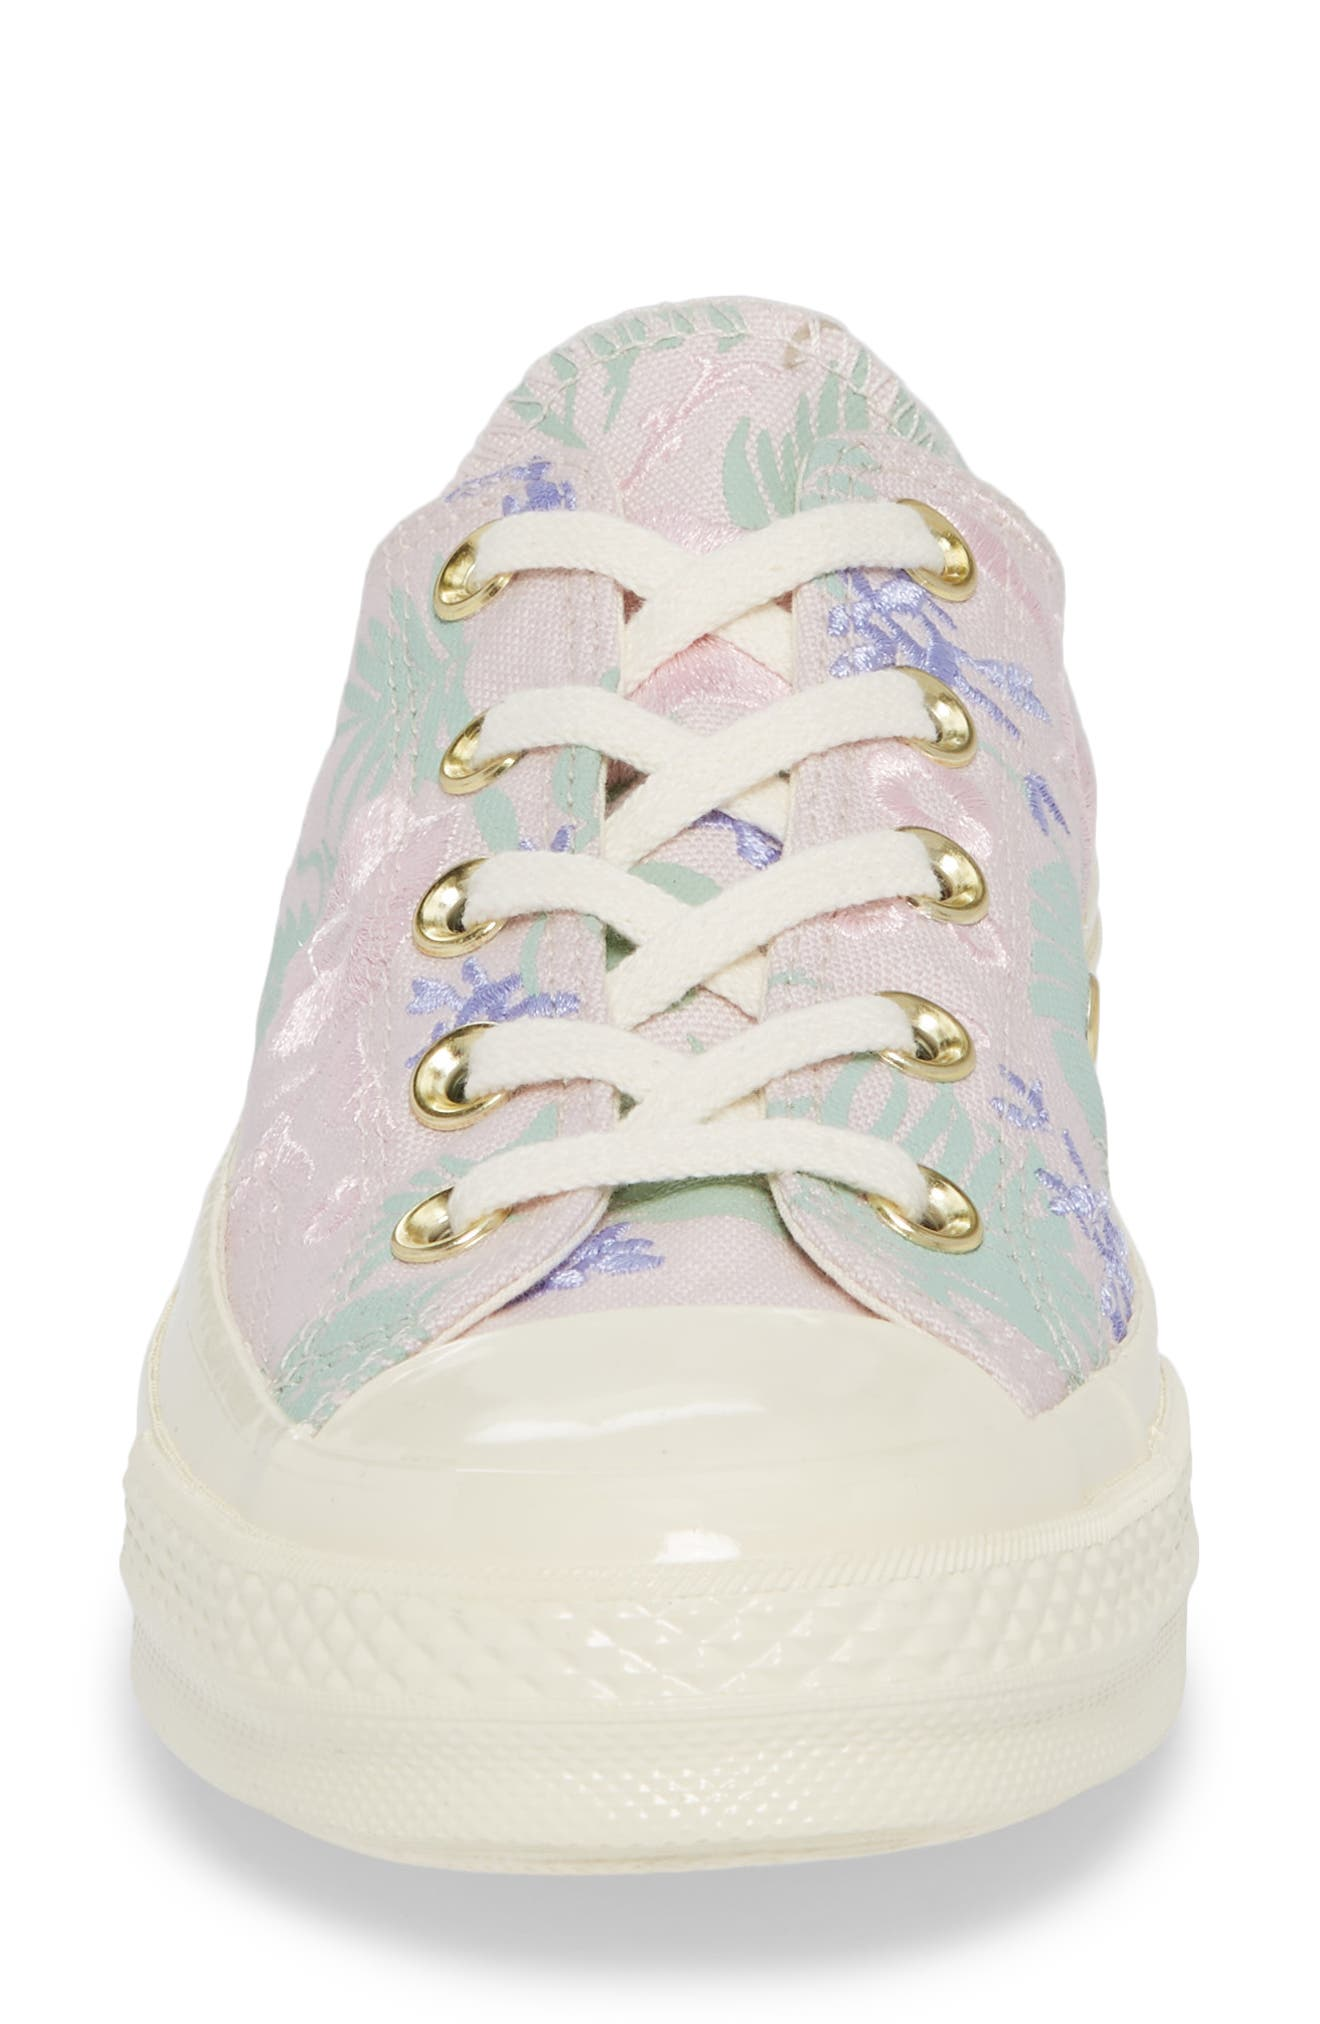 Chuck Taylor<sup>®</sup> All Star<sup>®</sup> 70 Palm Print Low Top Sneaker,                             Alternate thumbnail 4, color,                             658